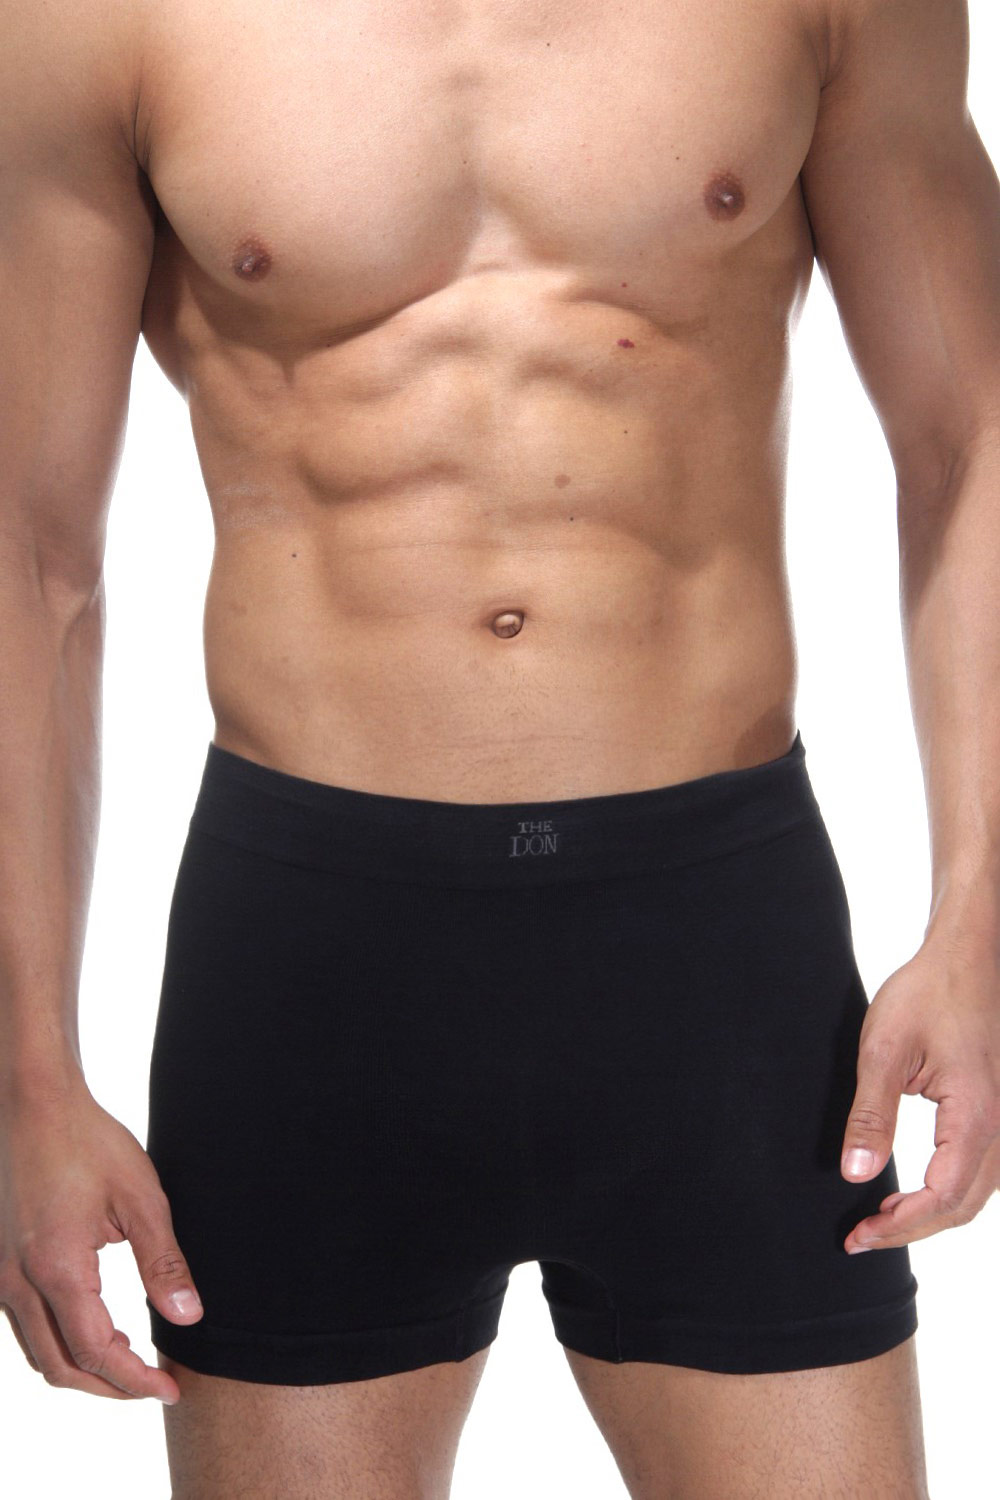 THE DON Seamless trunks at oboy.com